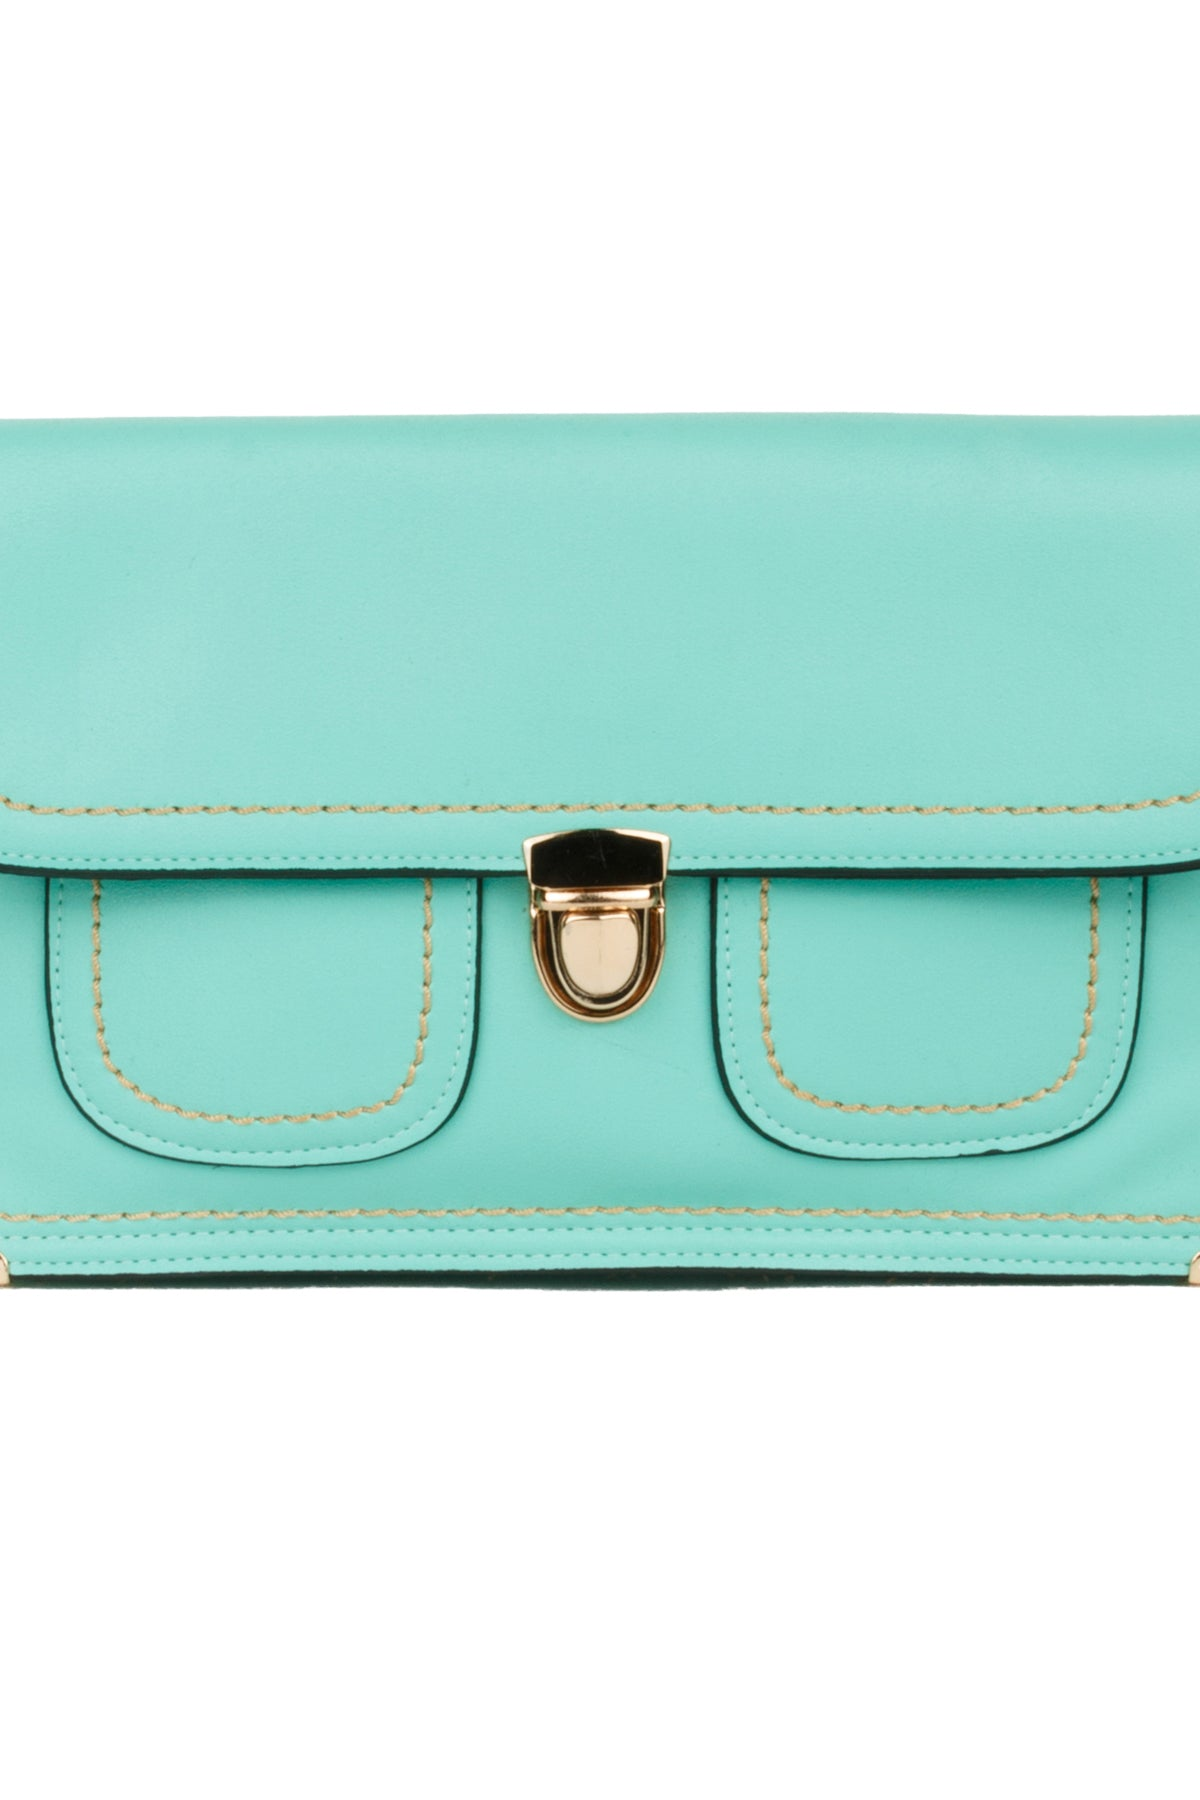 Front Flap Double Pocket Clutch Purse